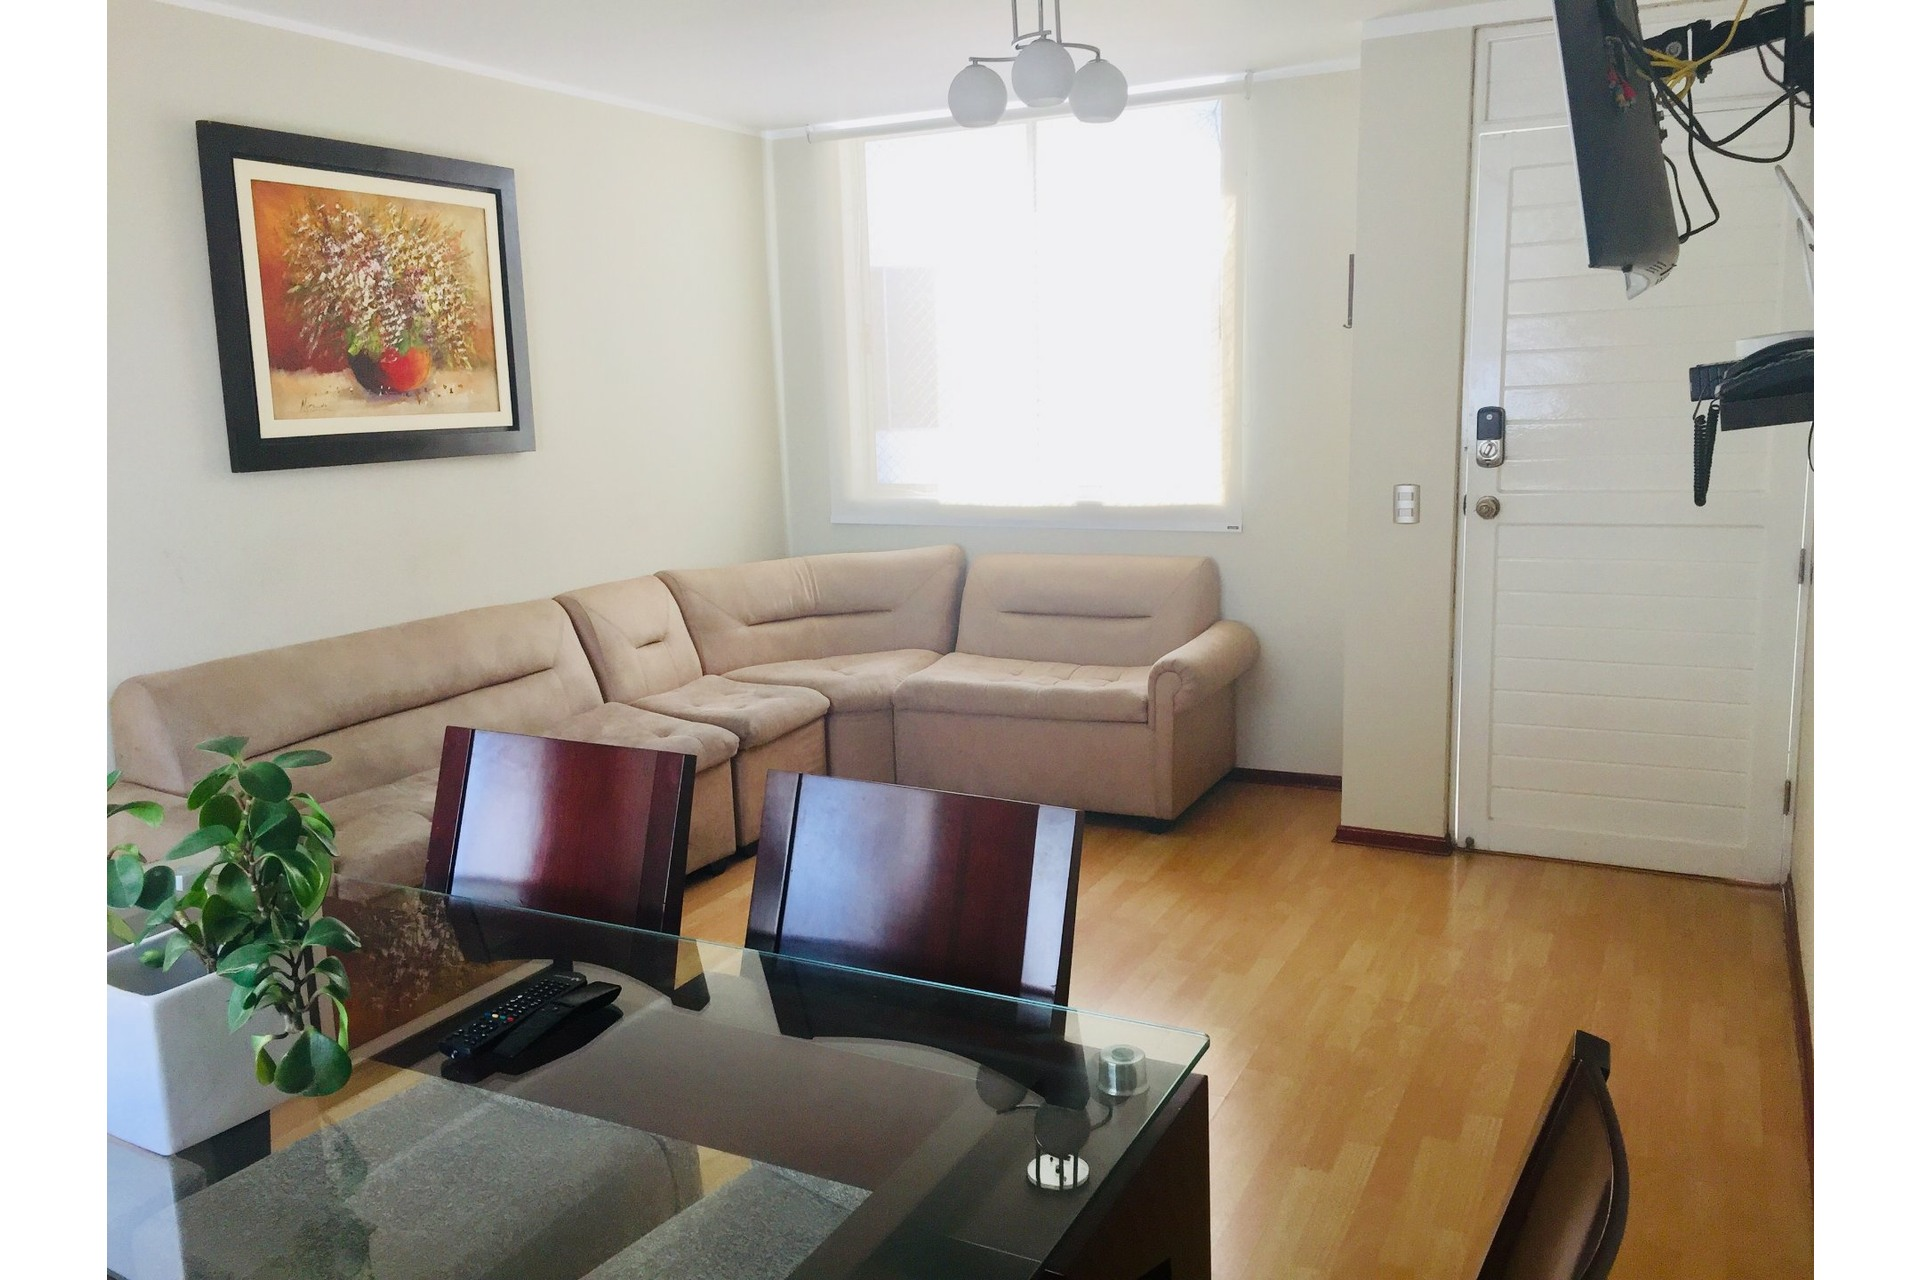 image 16 - Apartment For rent Autres pays / Other countries - 9 rooms